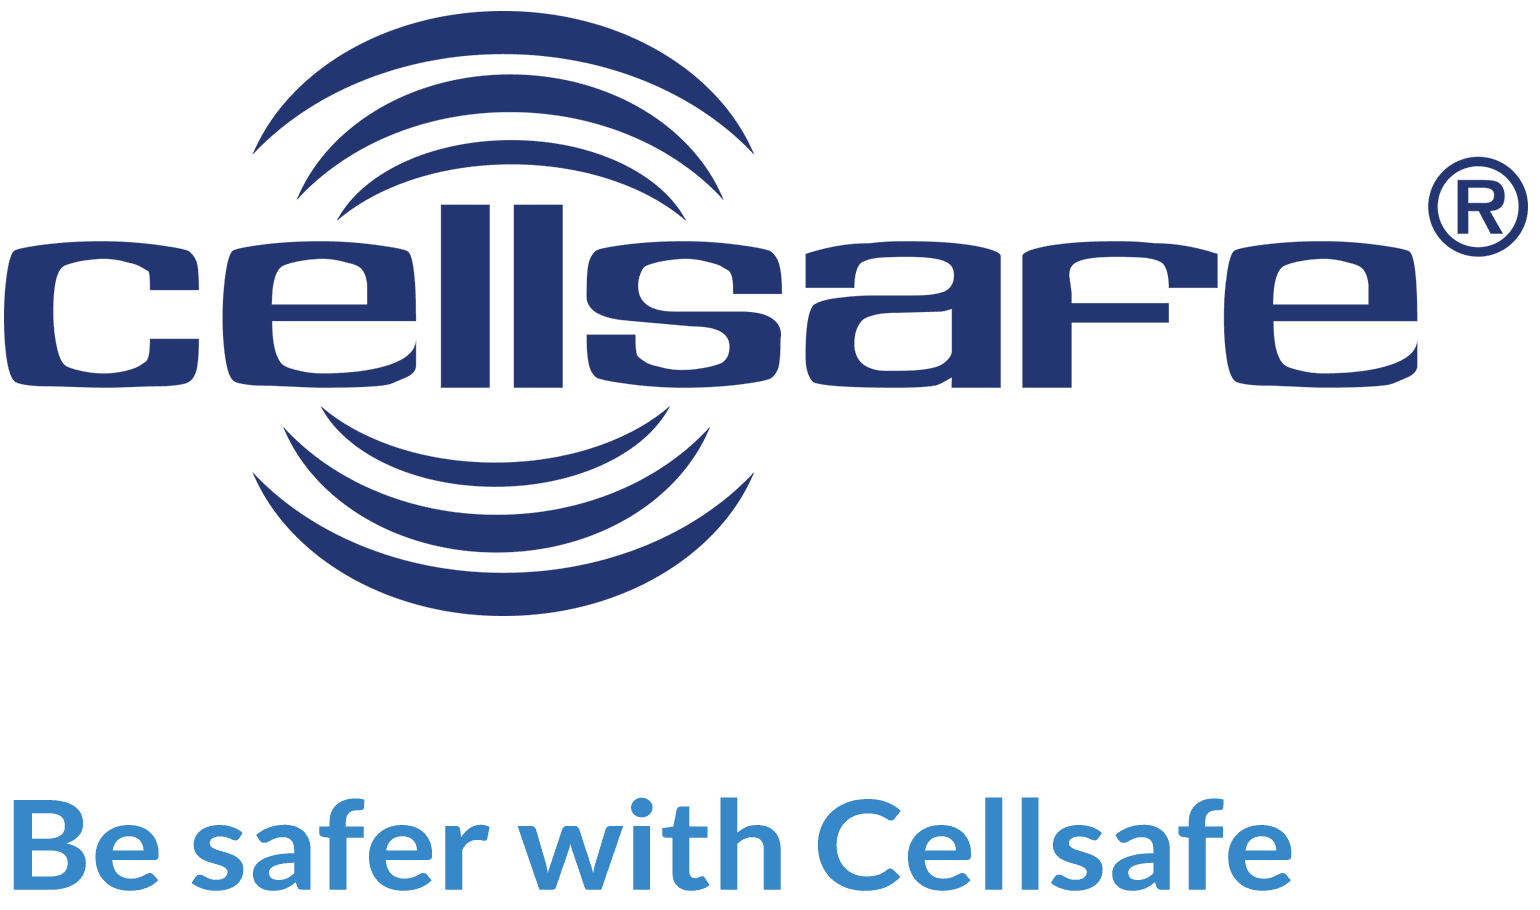 Cellsafe